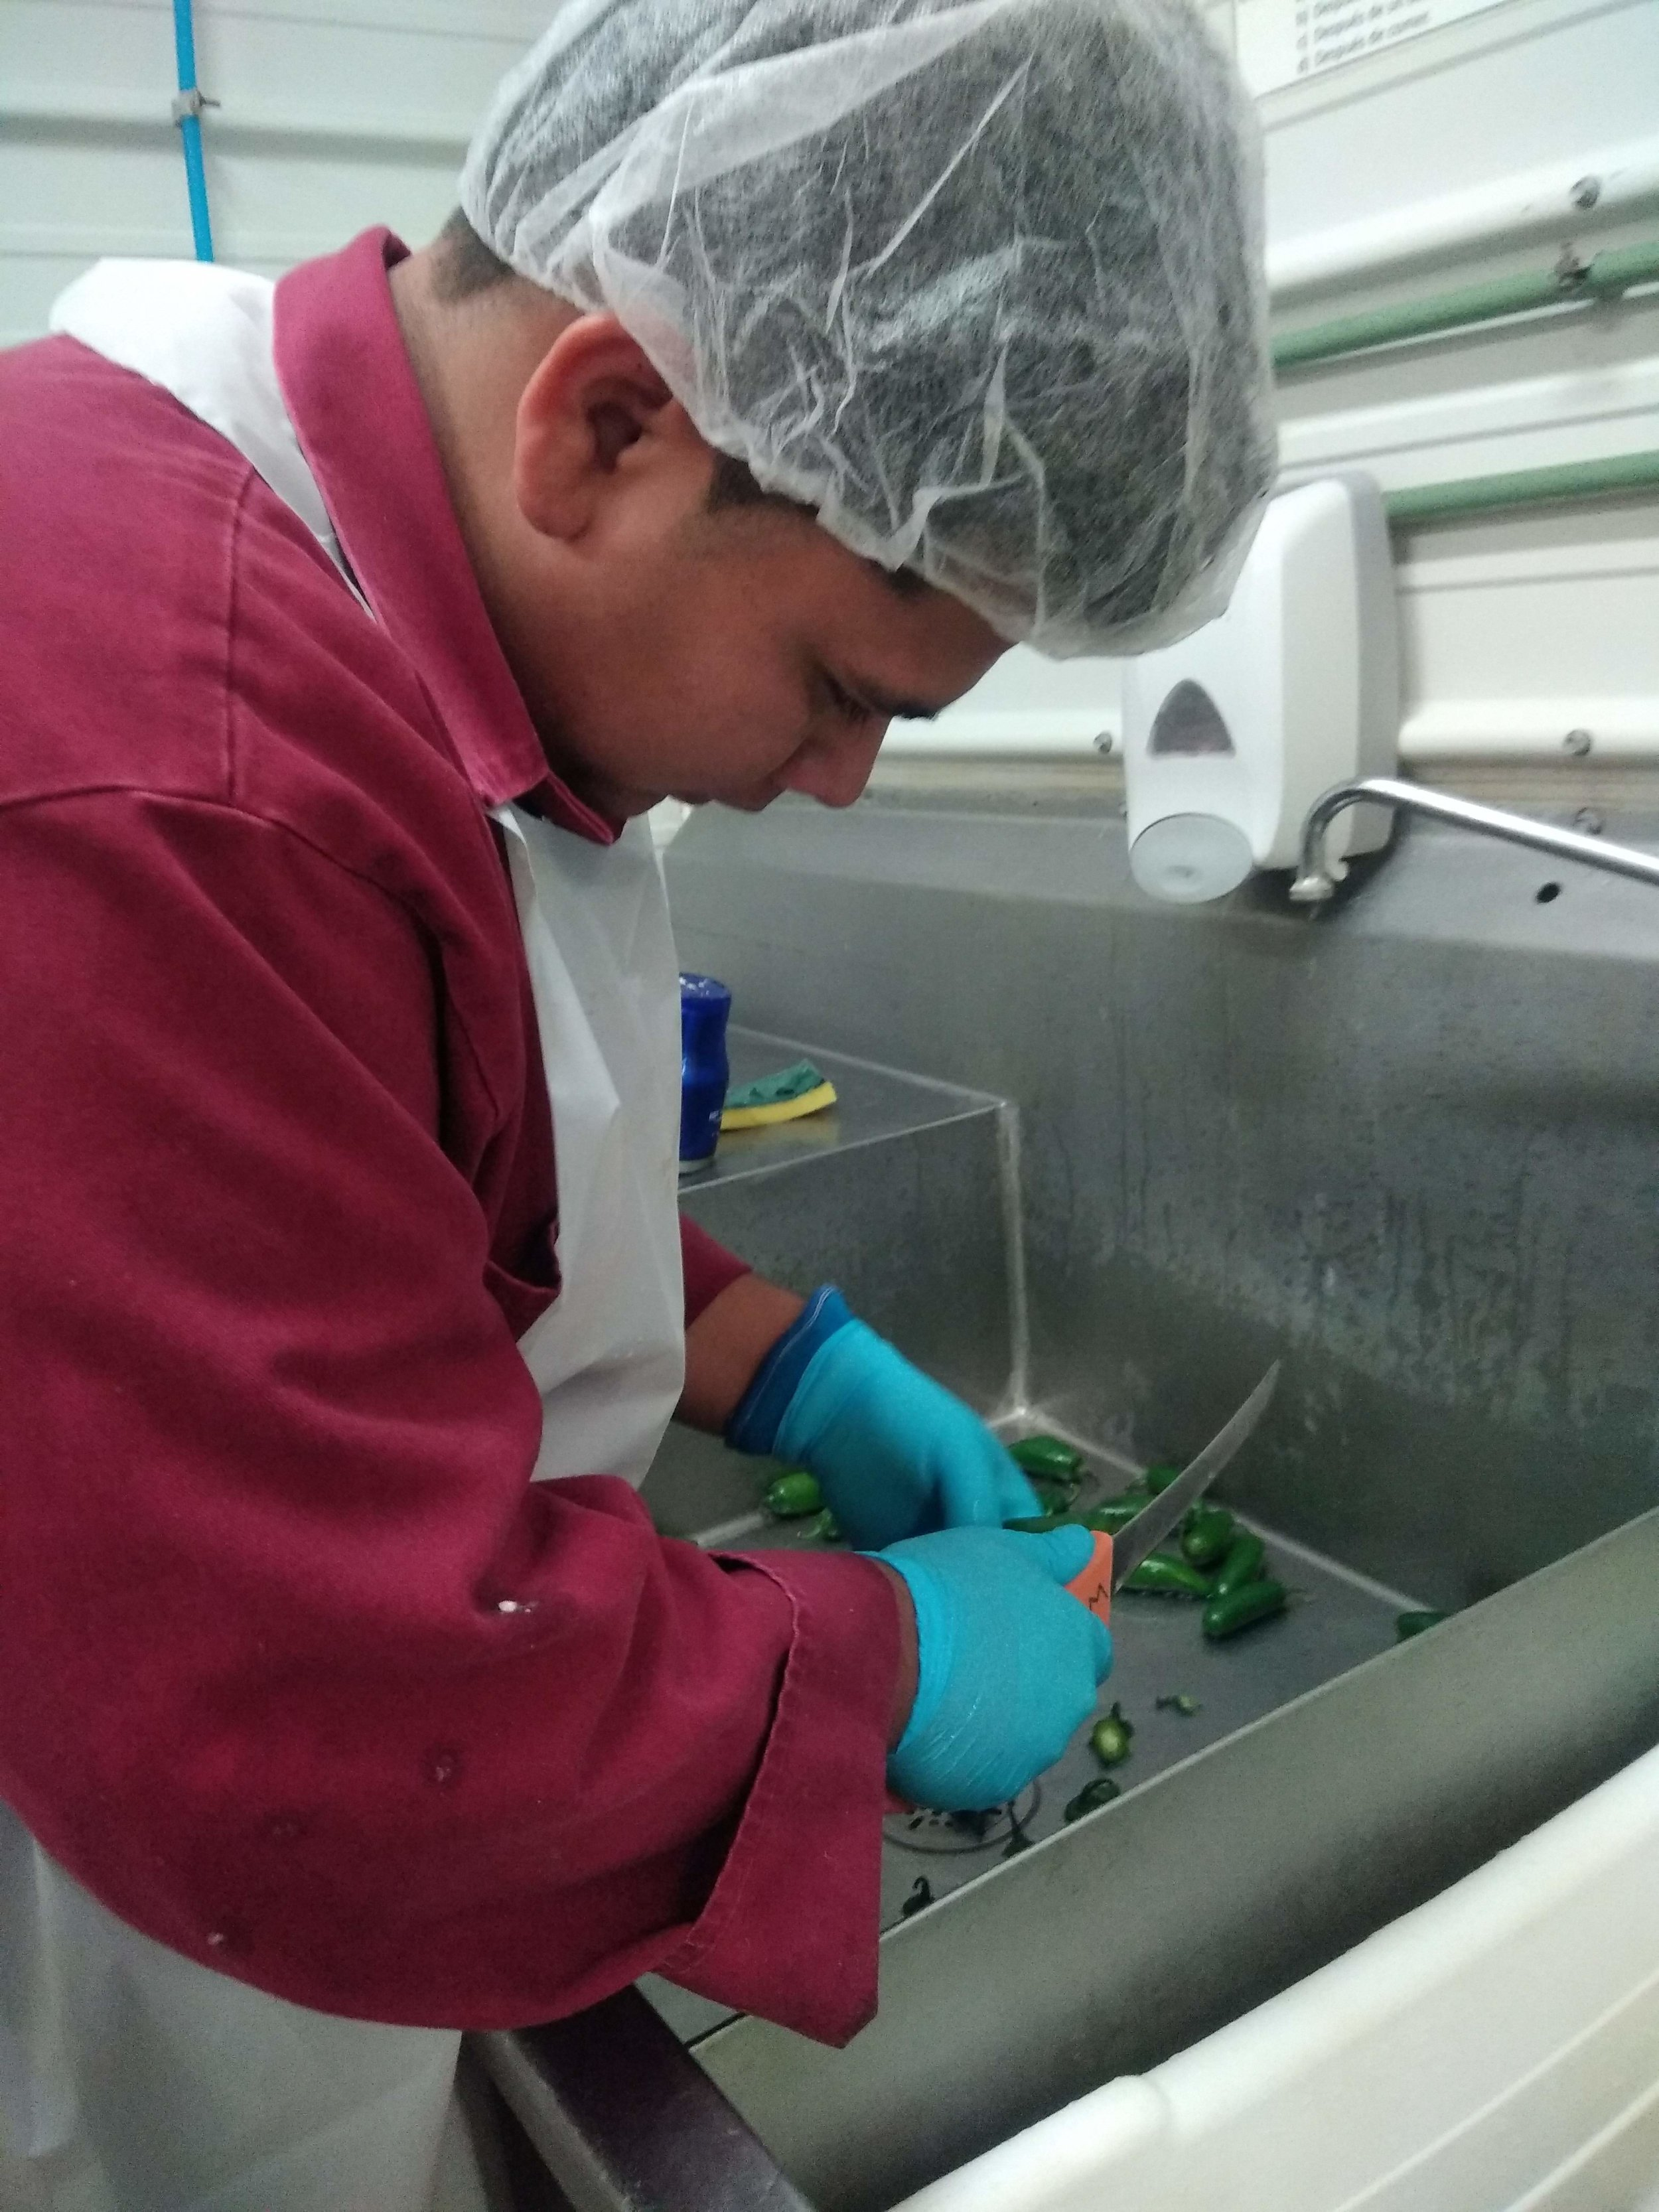 Miguel cuts the fresh jalepeños before adding them to the batch.